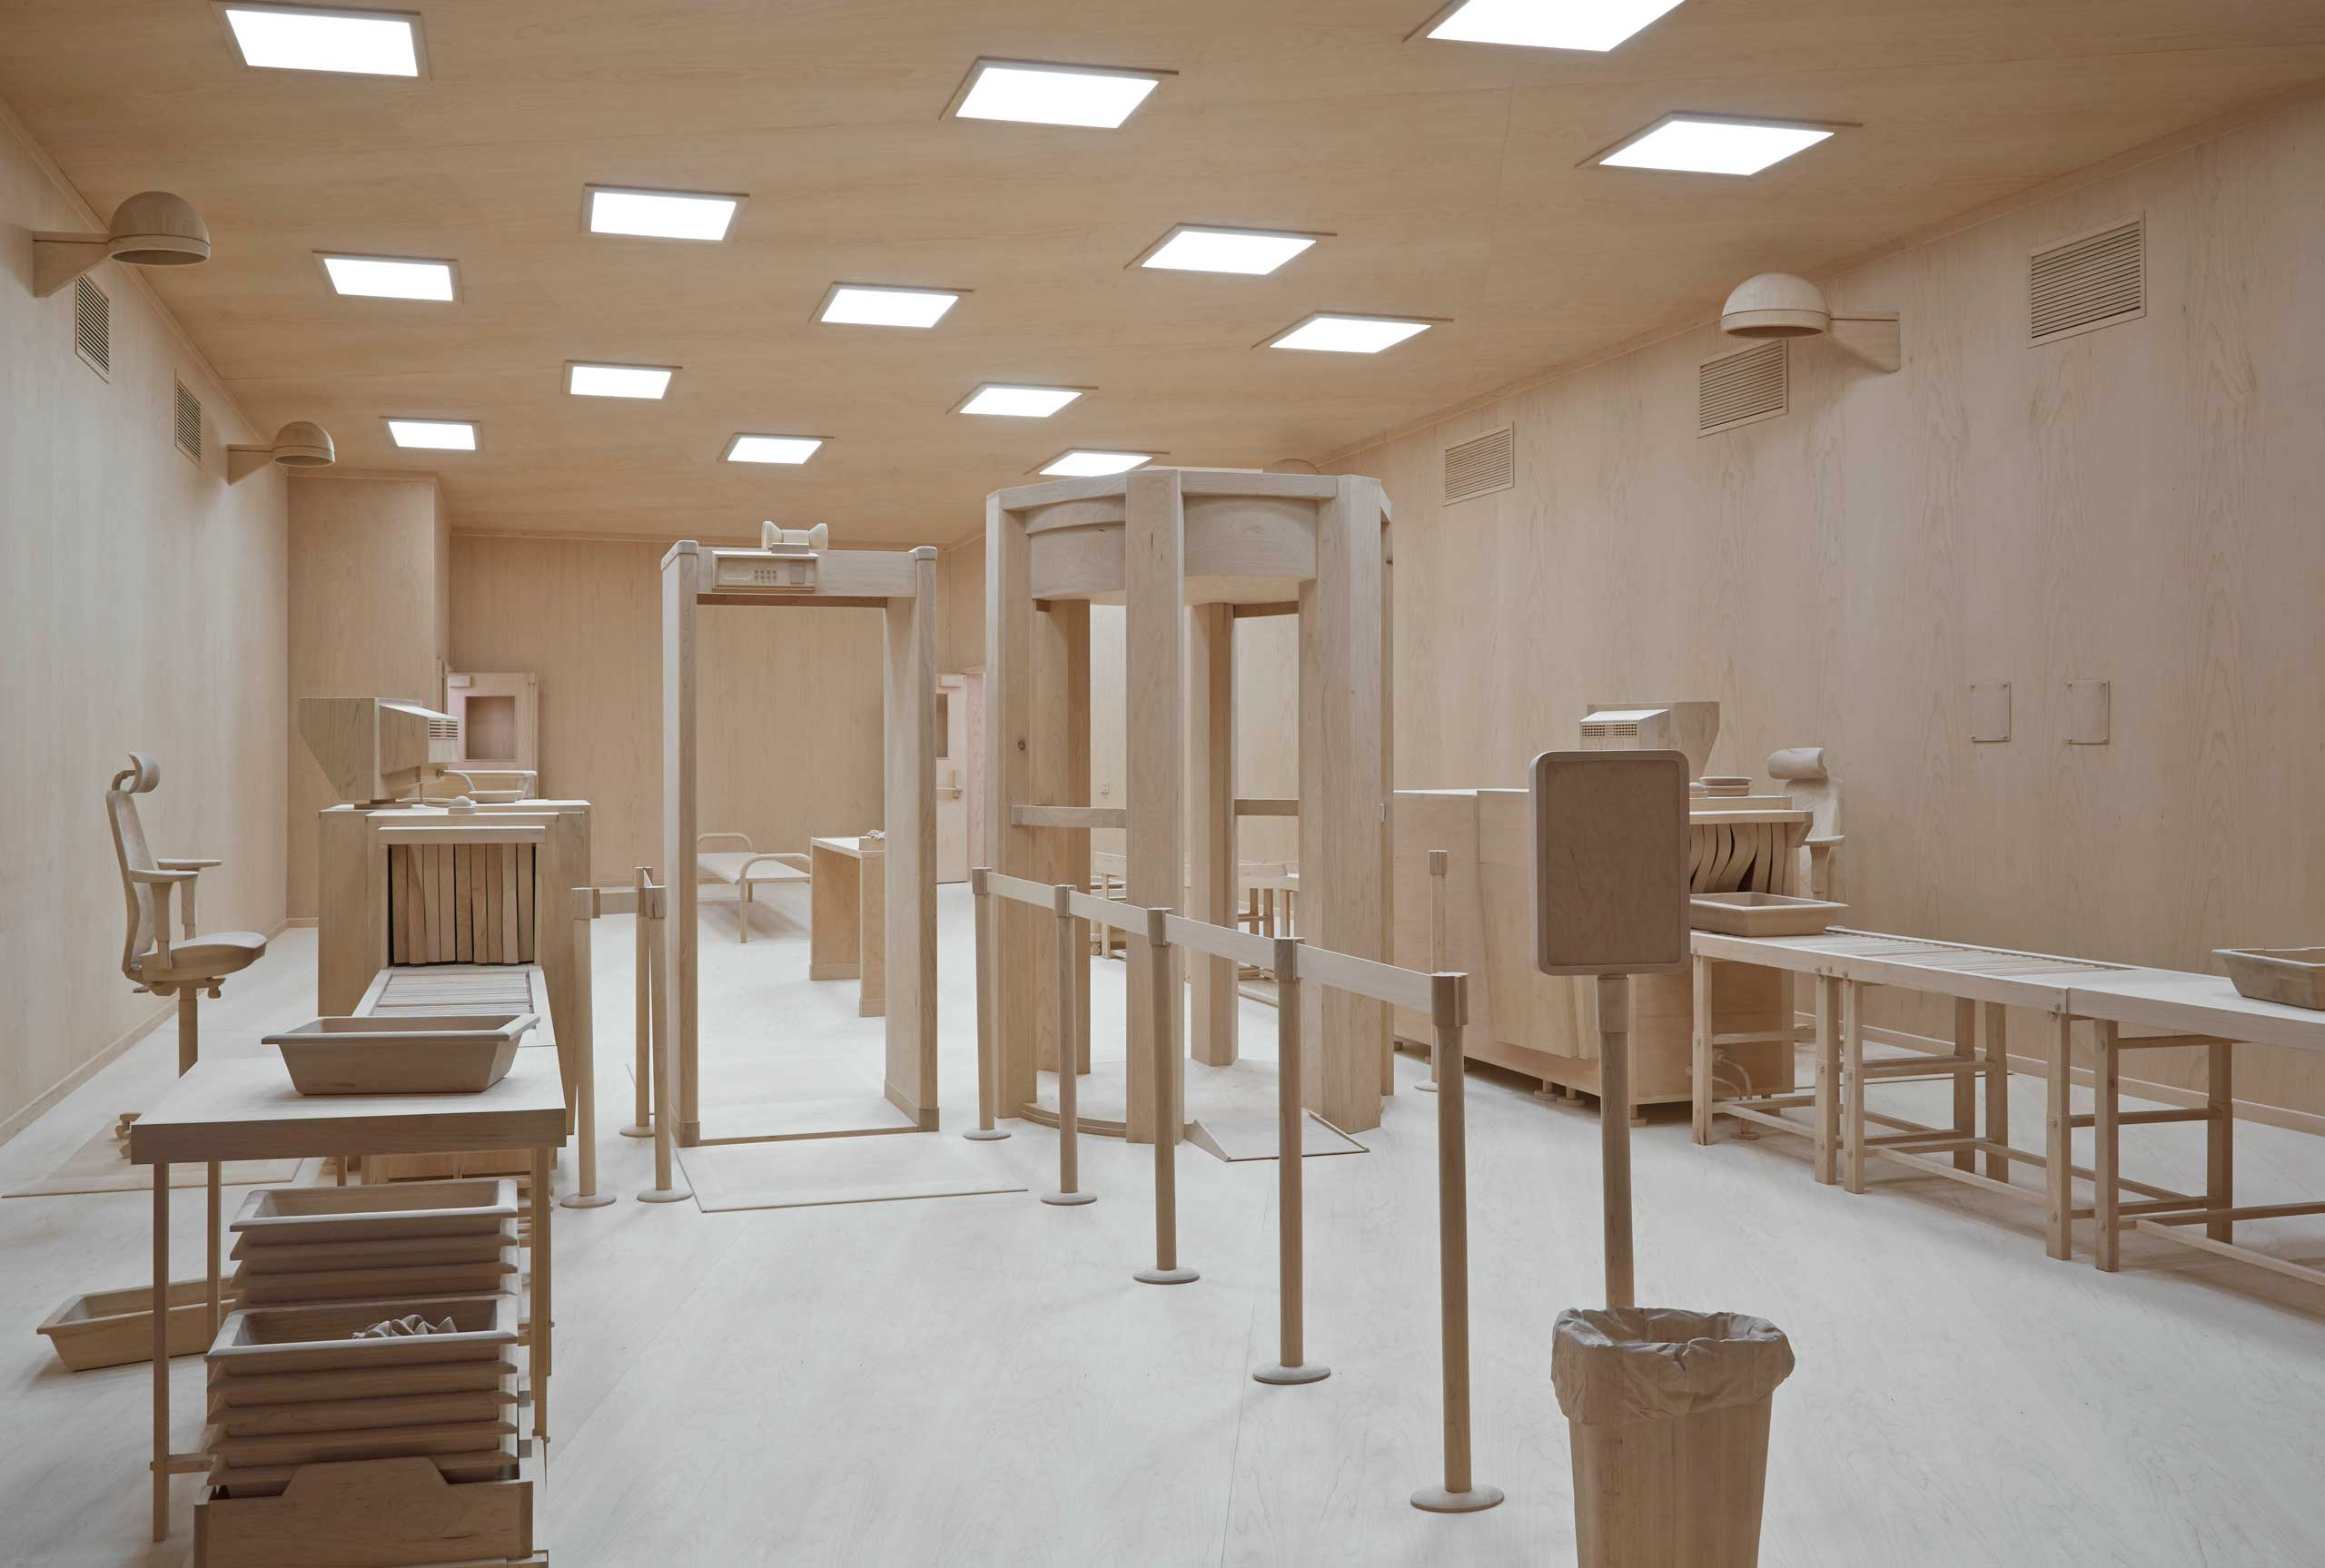 Artist Roxy Paine's installation depicts an airport checkpoint.